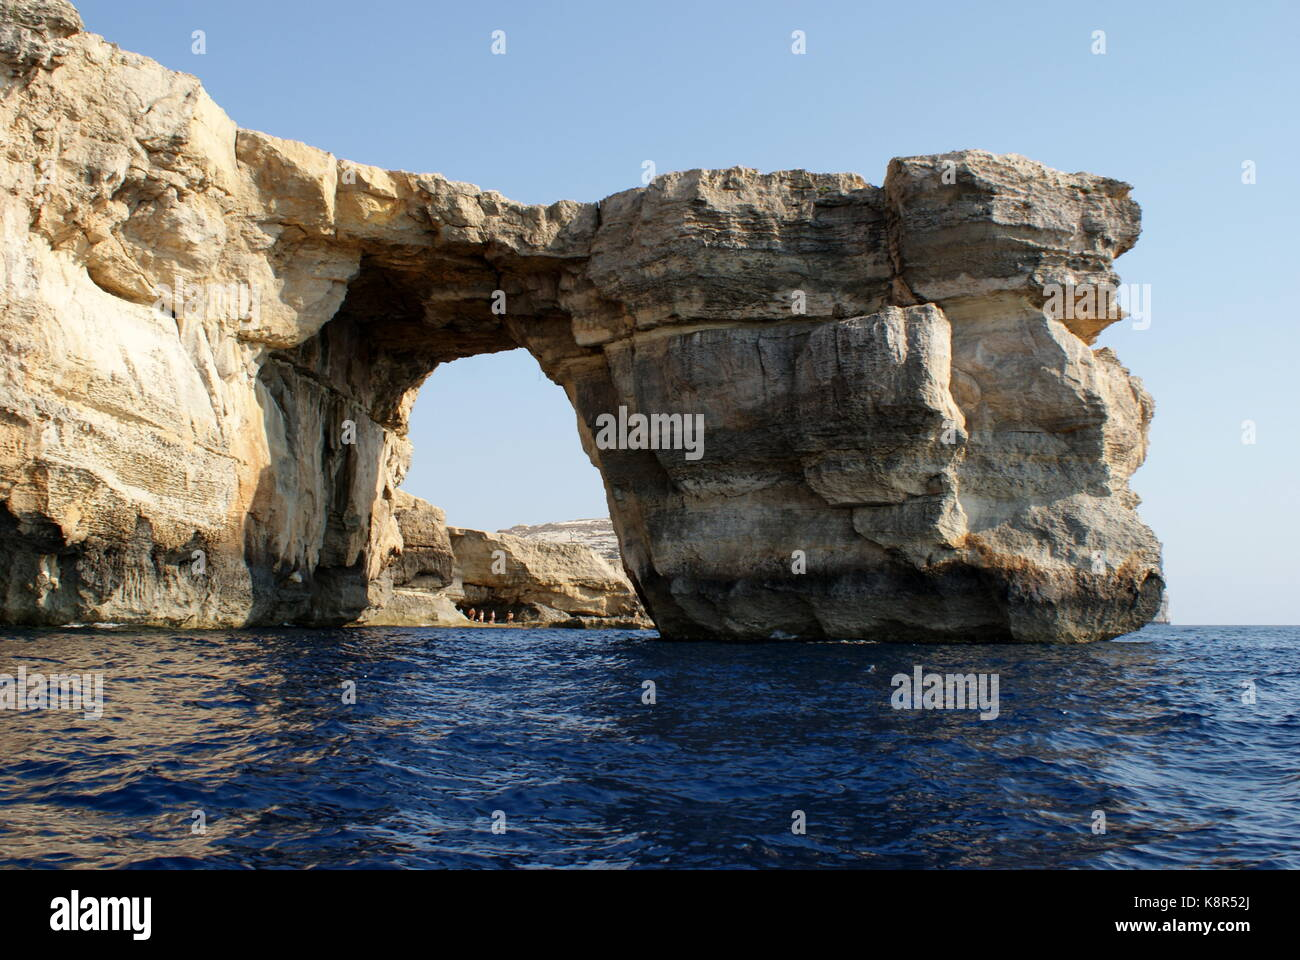 La fenêtre d'Azur, Dwejra bay, San Lawrenz, Gozo, Malte Photo Stock